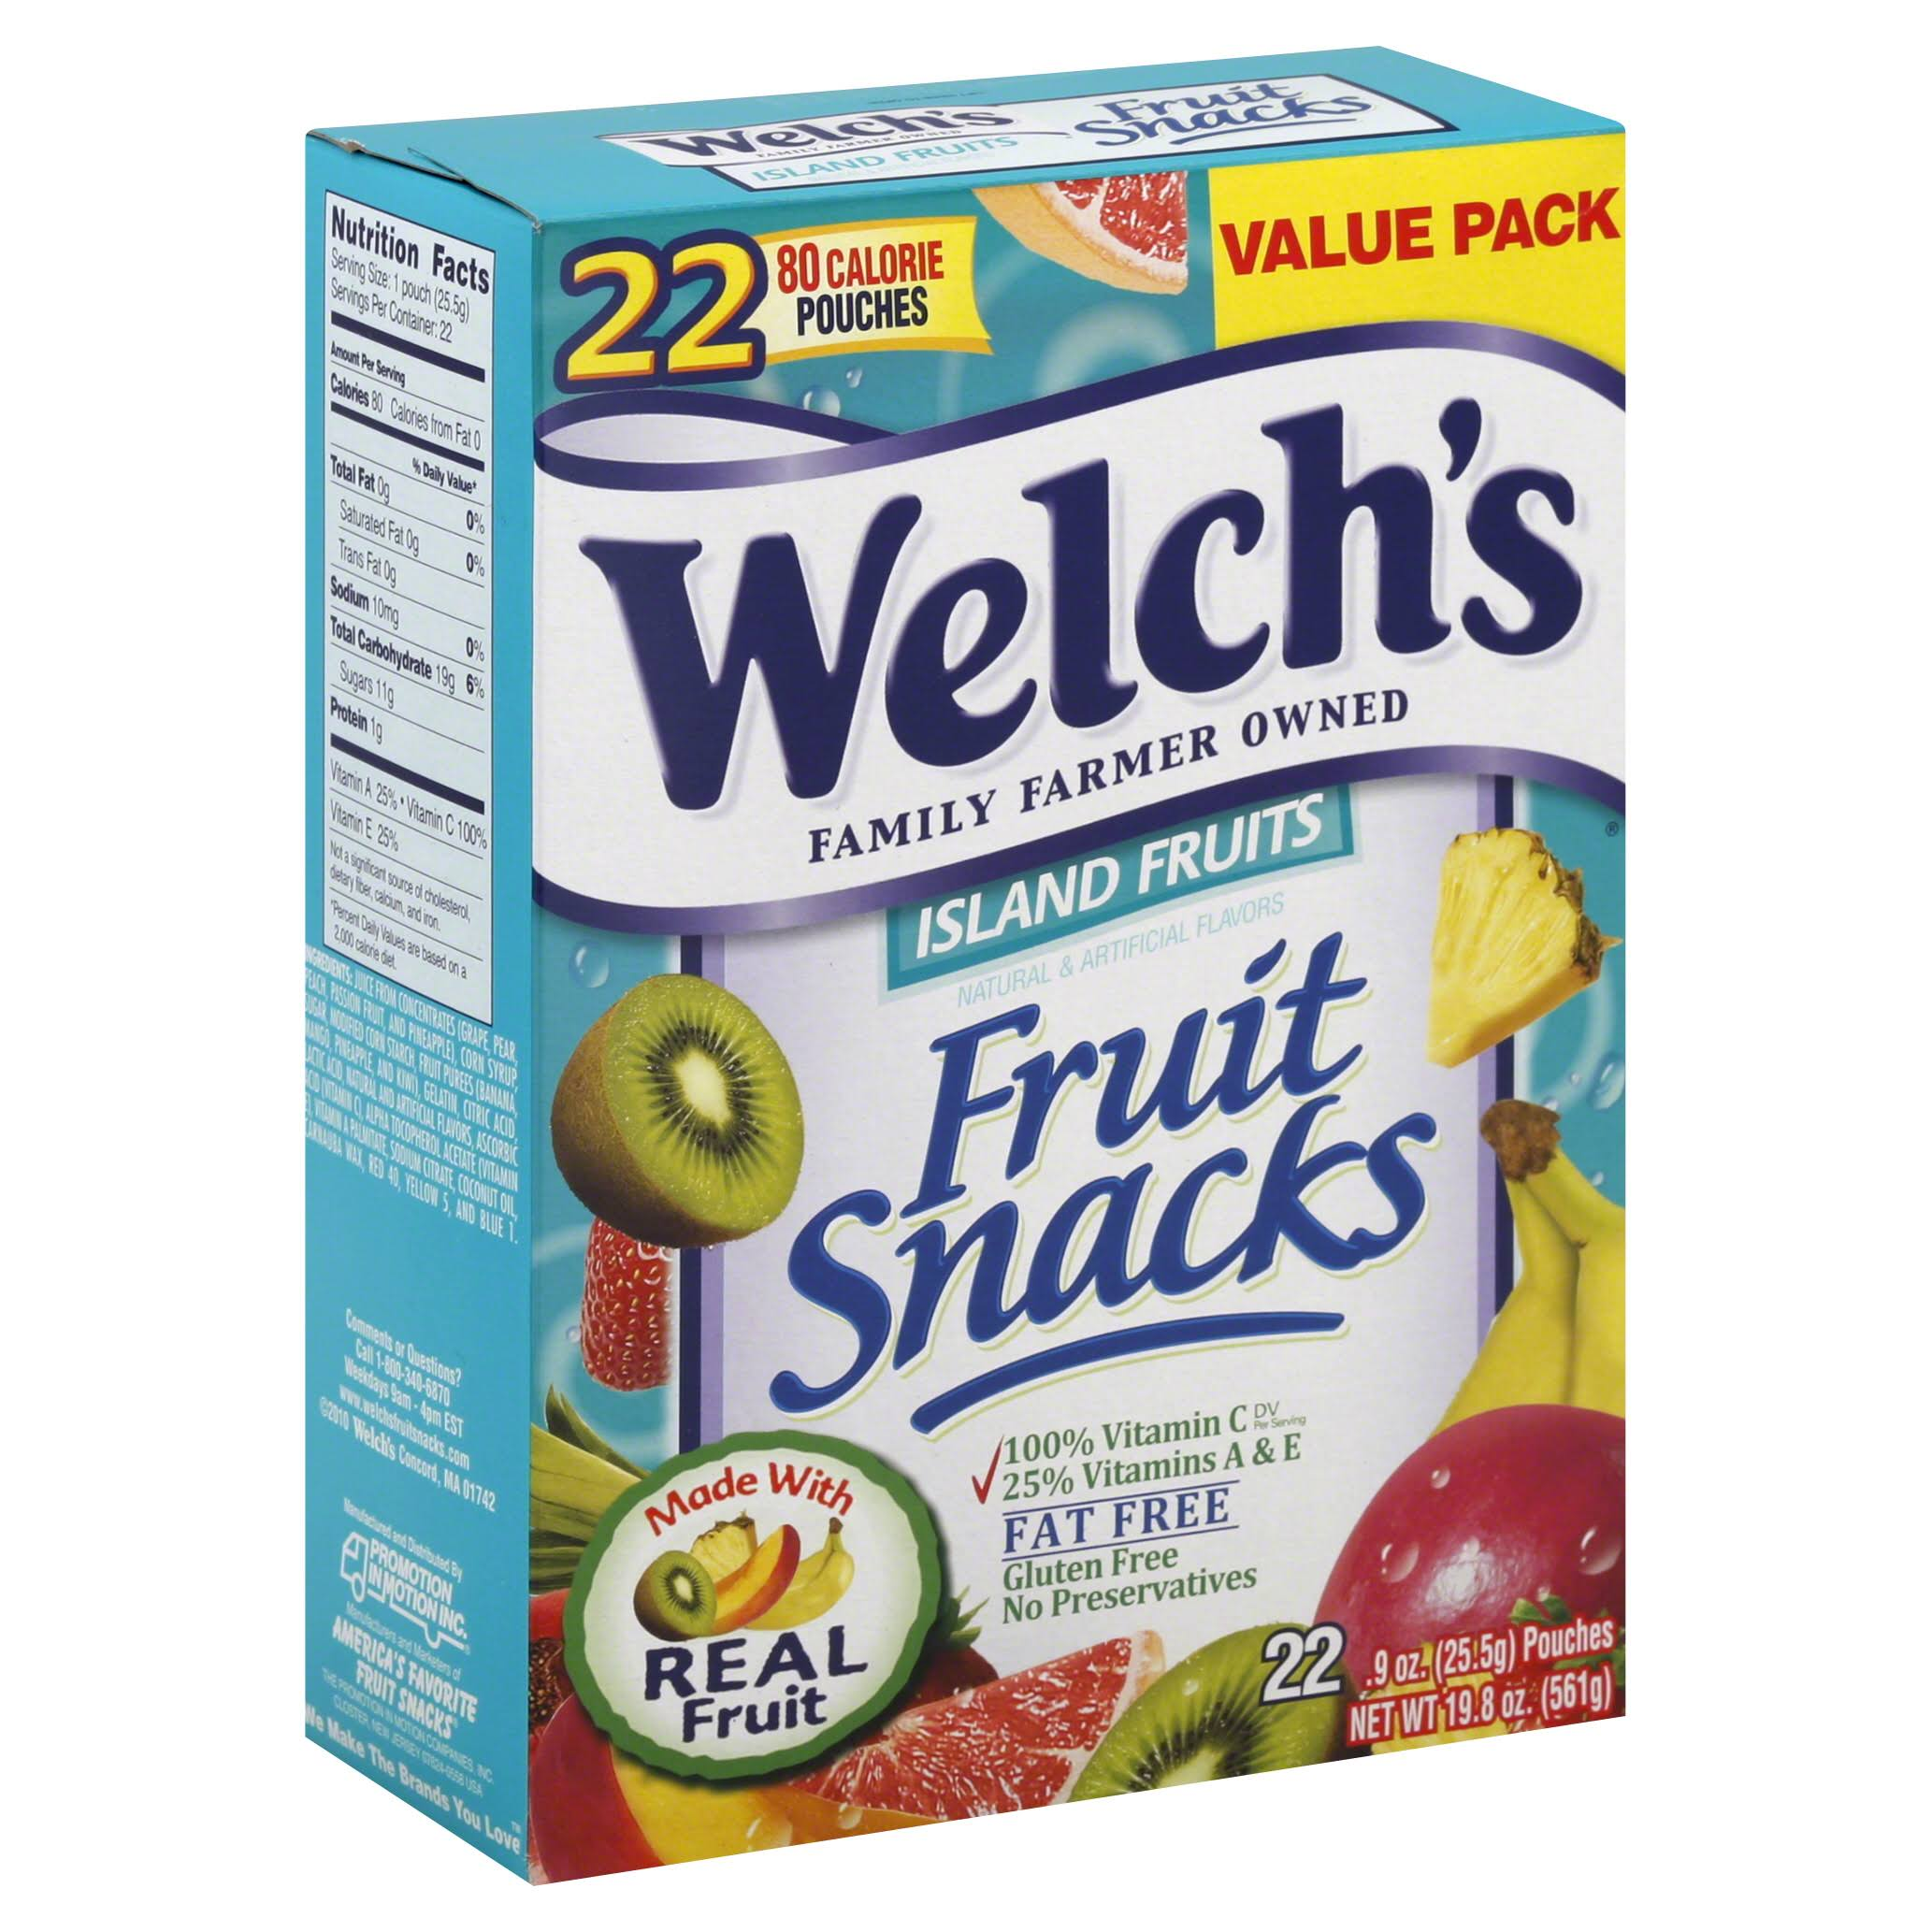 Welch's Fruit Snacks - Island Fruits, 0.9oz, 22pk